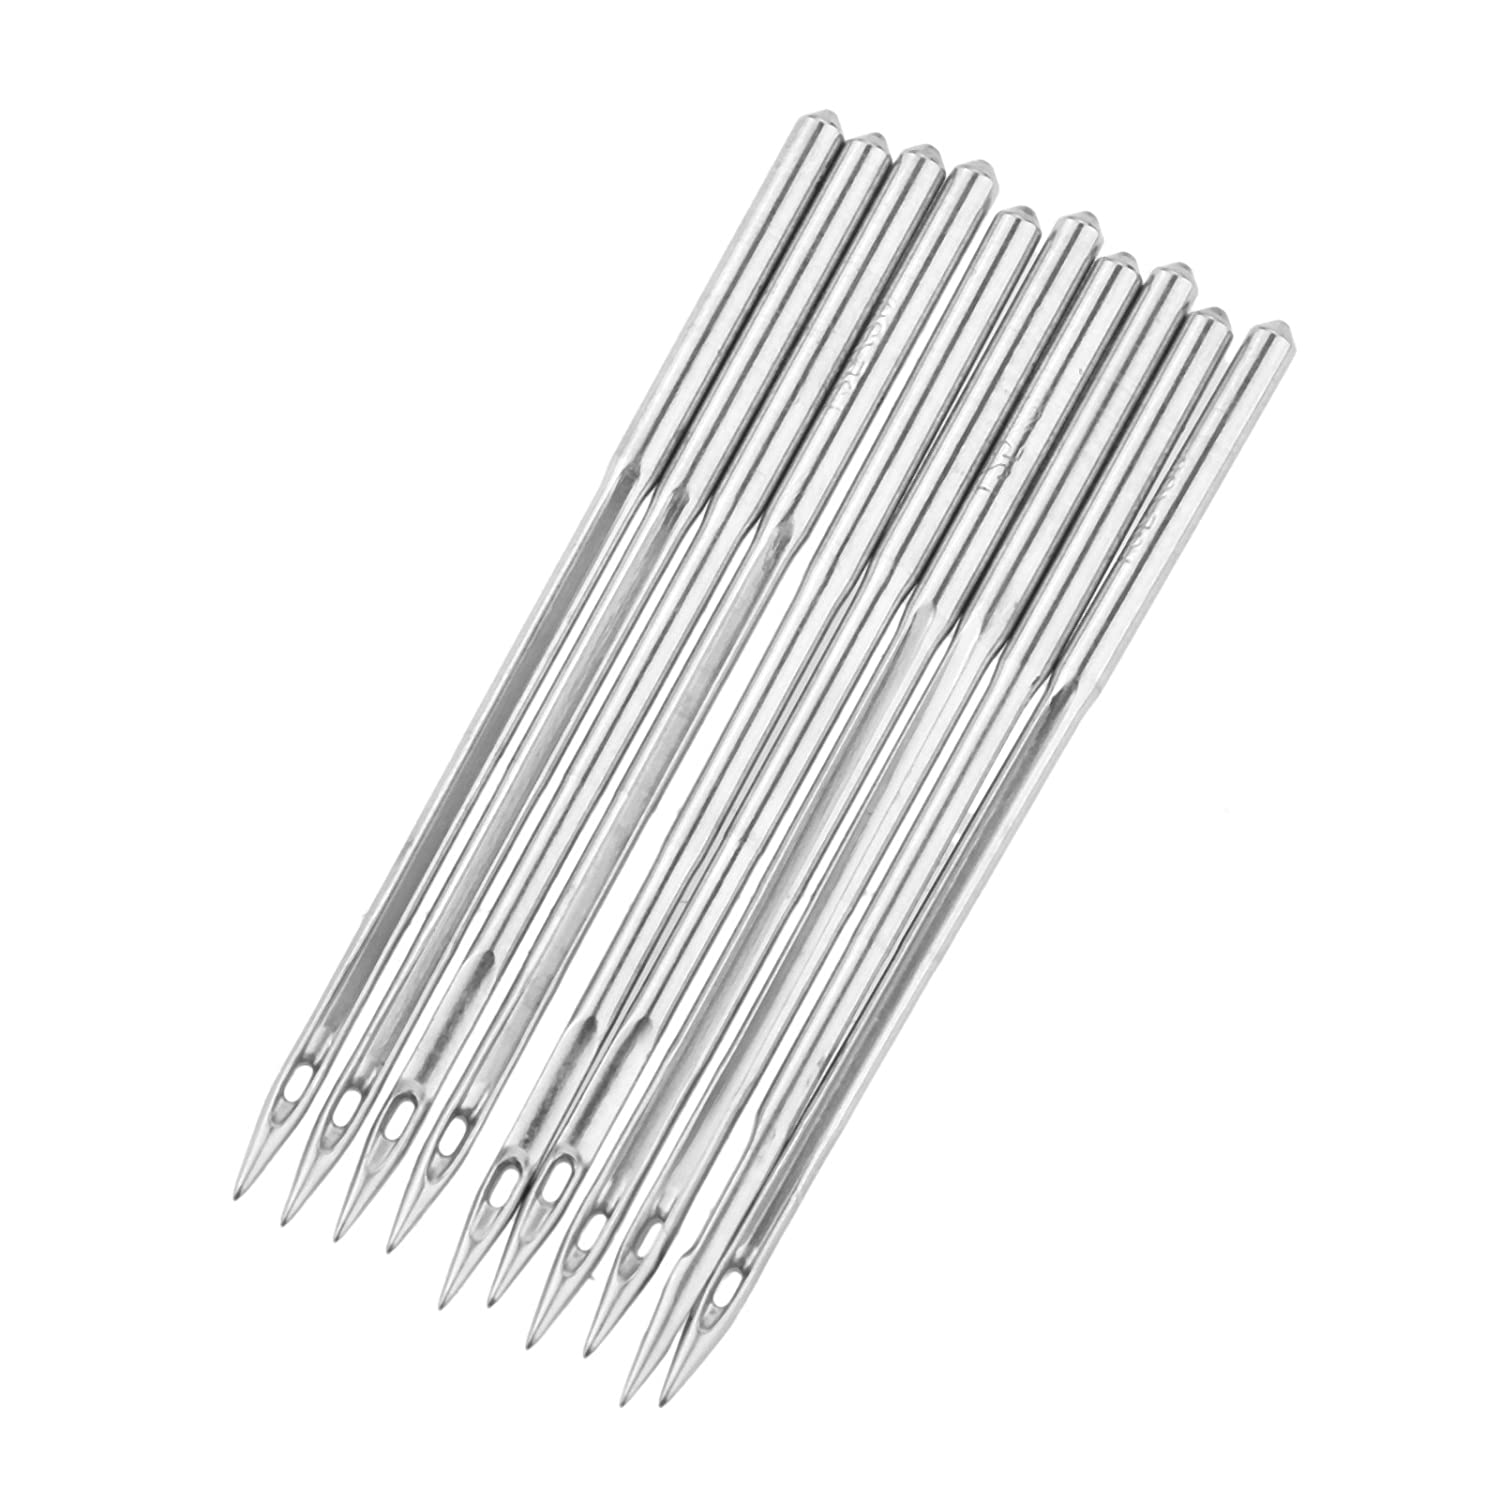 Amazon.com: 10Pcs DB1 Industrial Sewing Machine Needles for ...